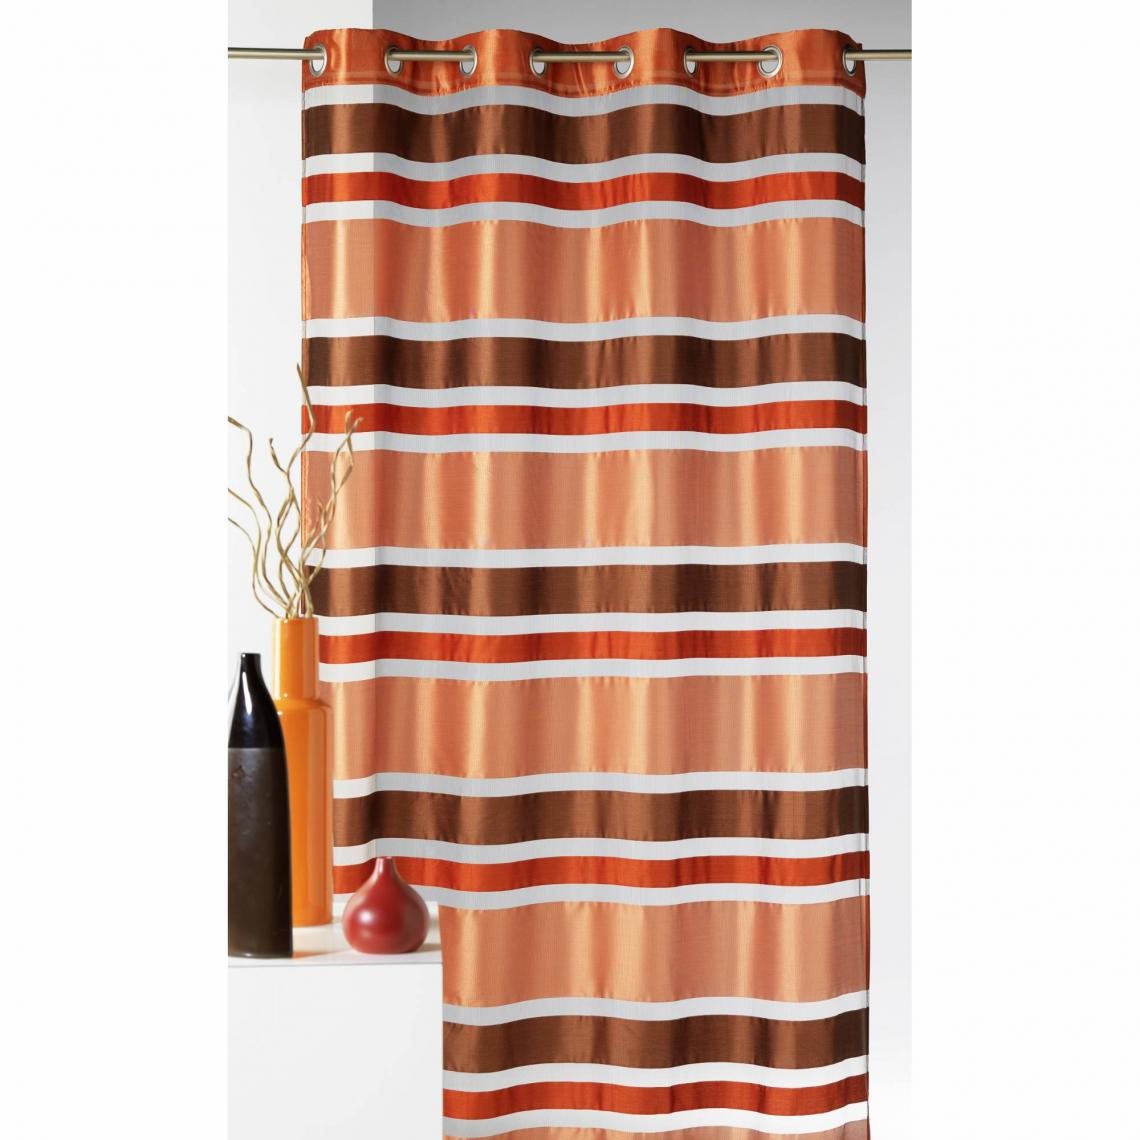 rideau voilage a œillets raye organza polyester mayotte home maison marron